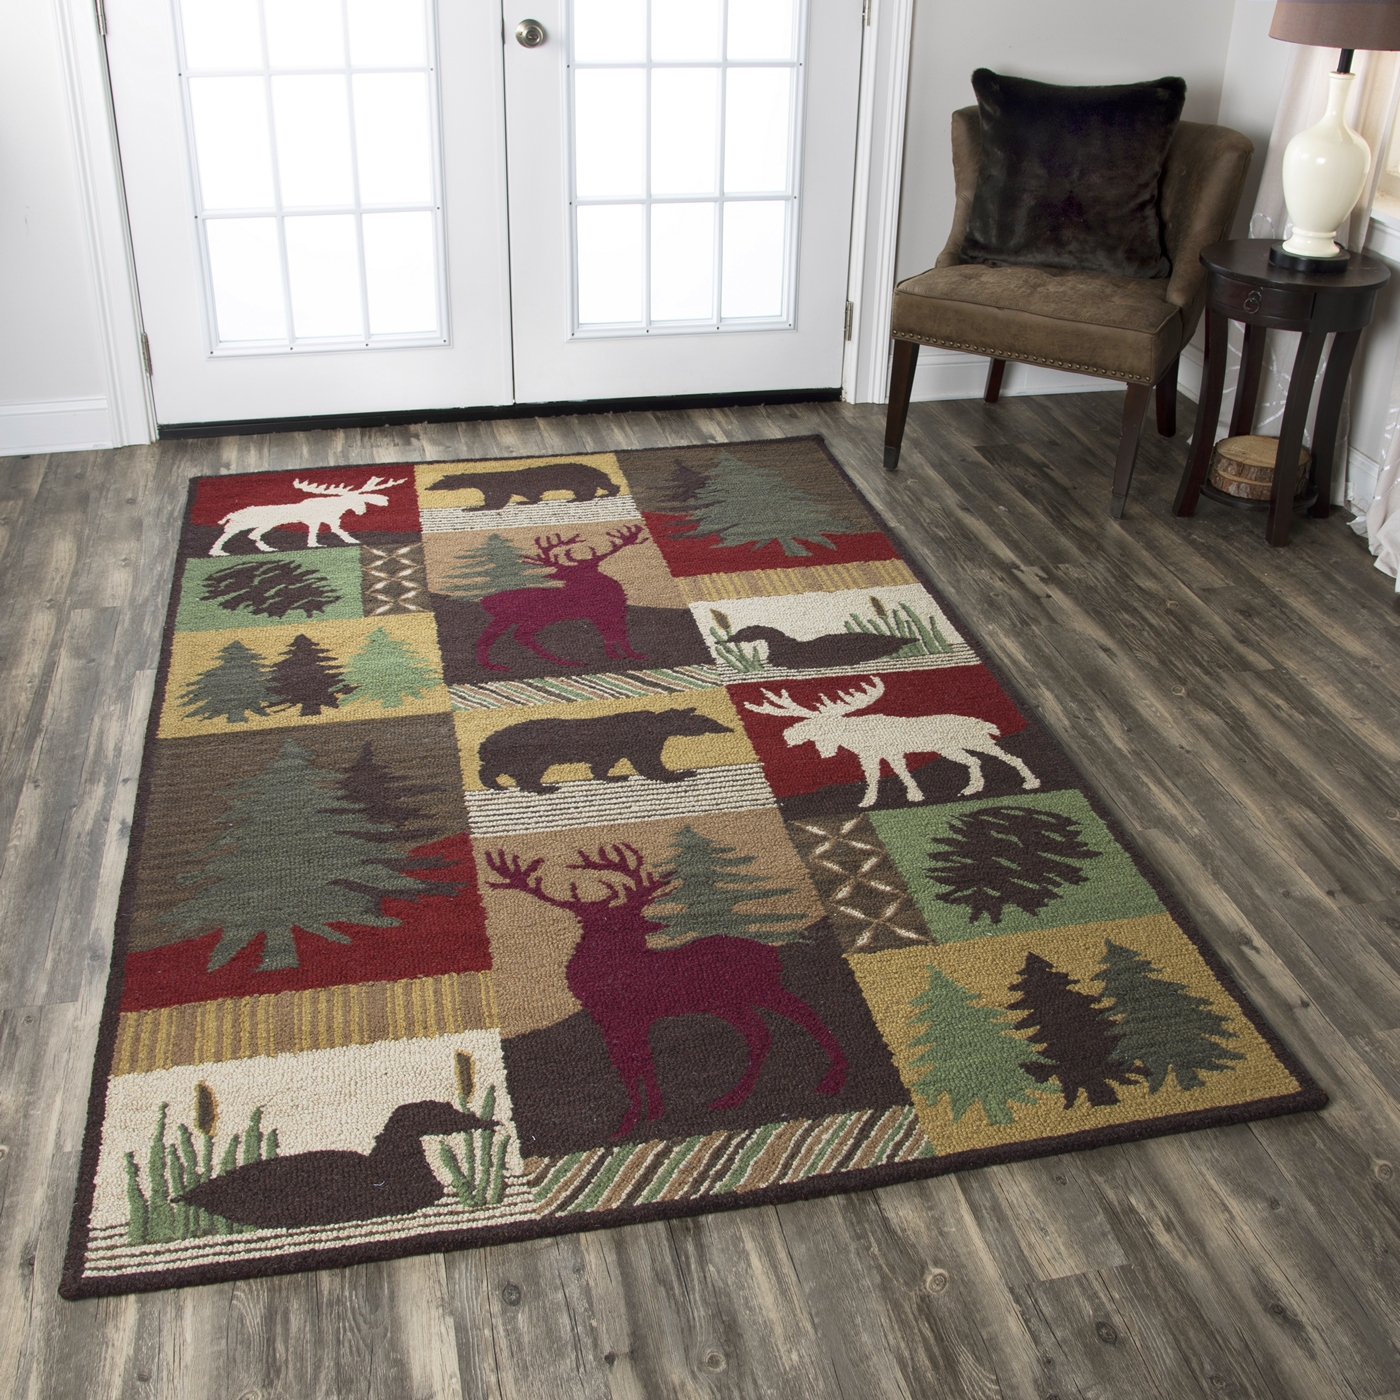 Country Forest & Animals Wool Area Rug In Red Brown Green